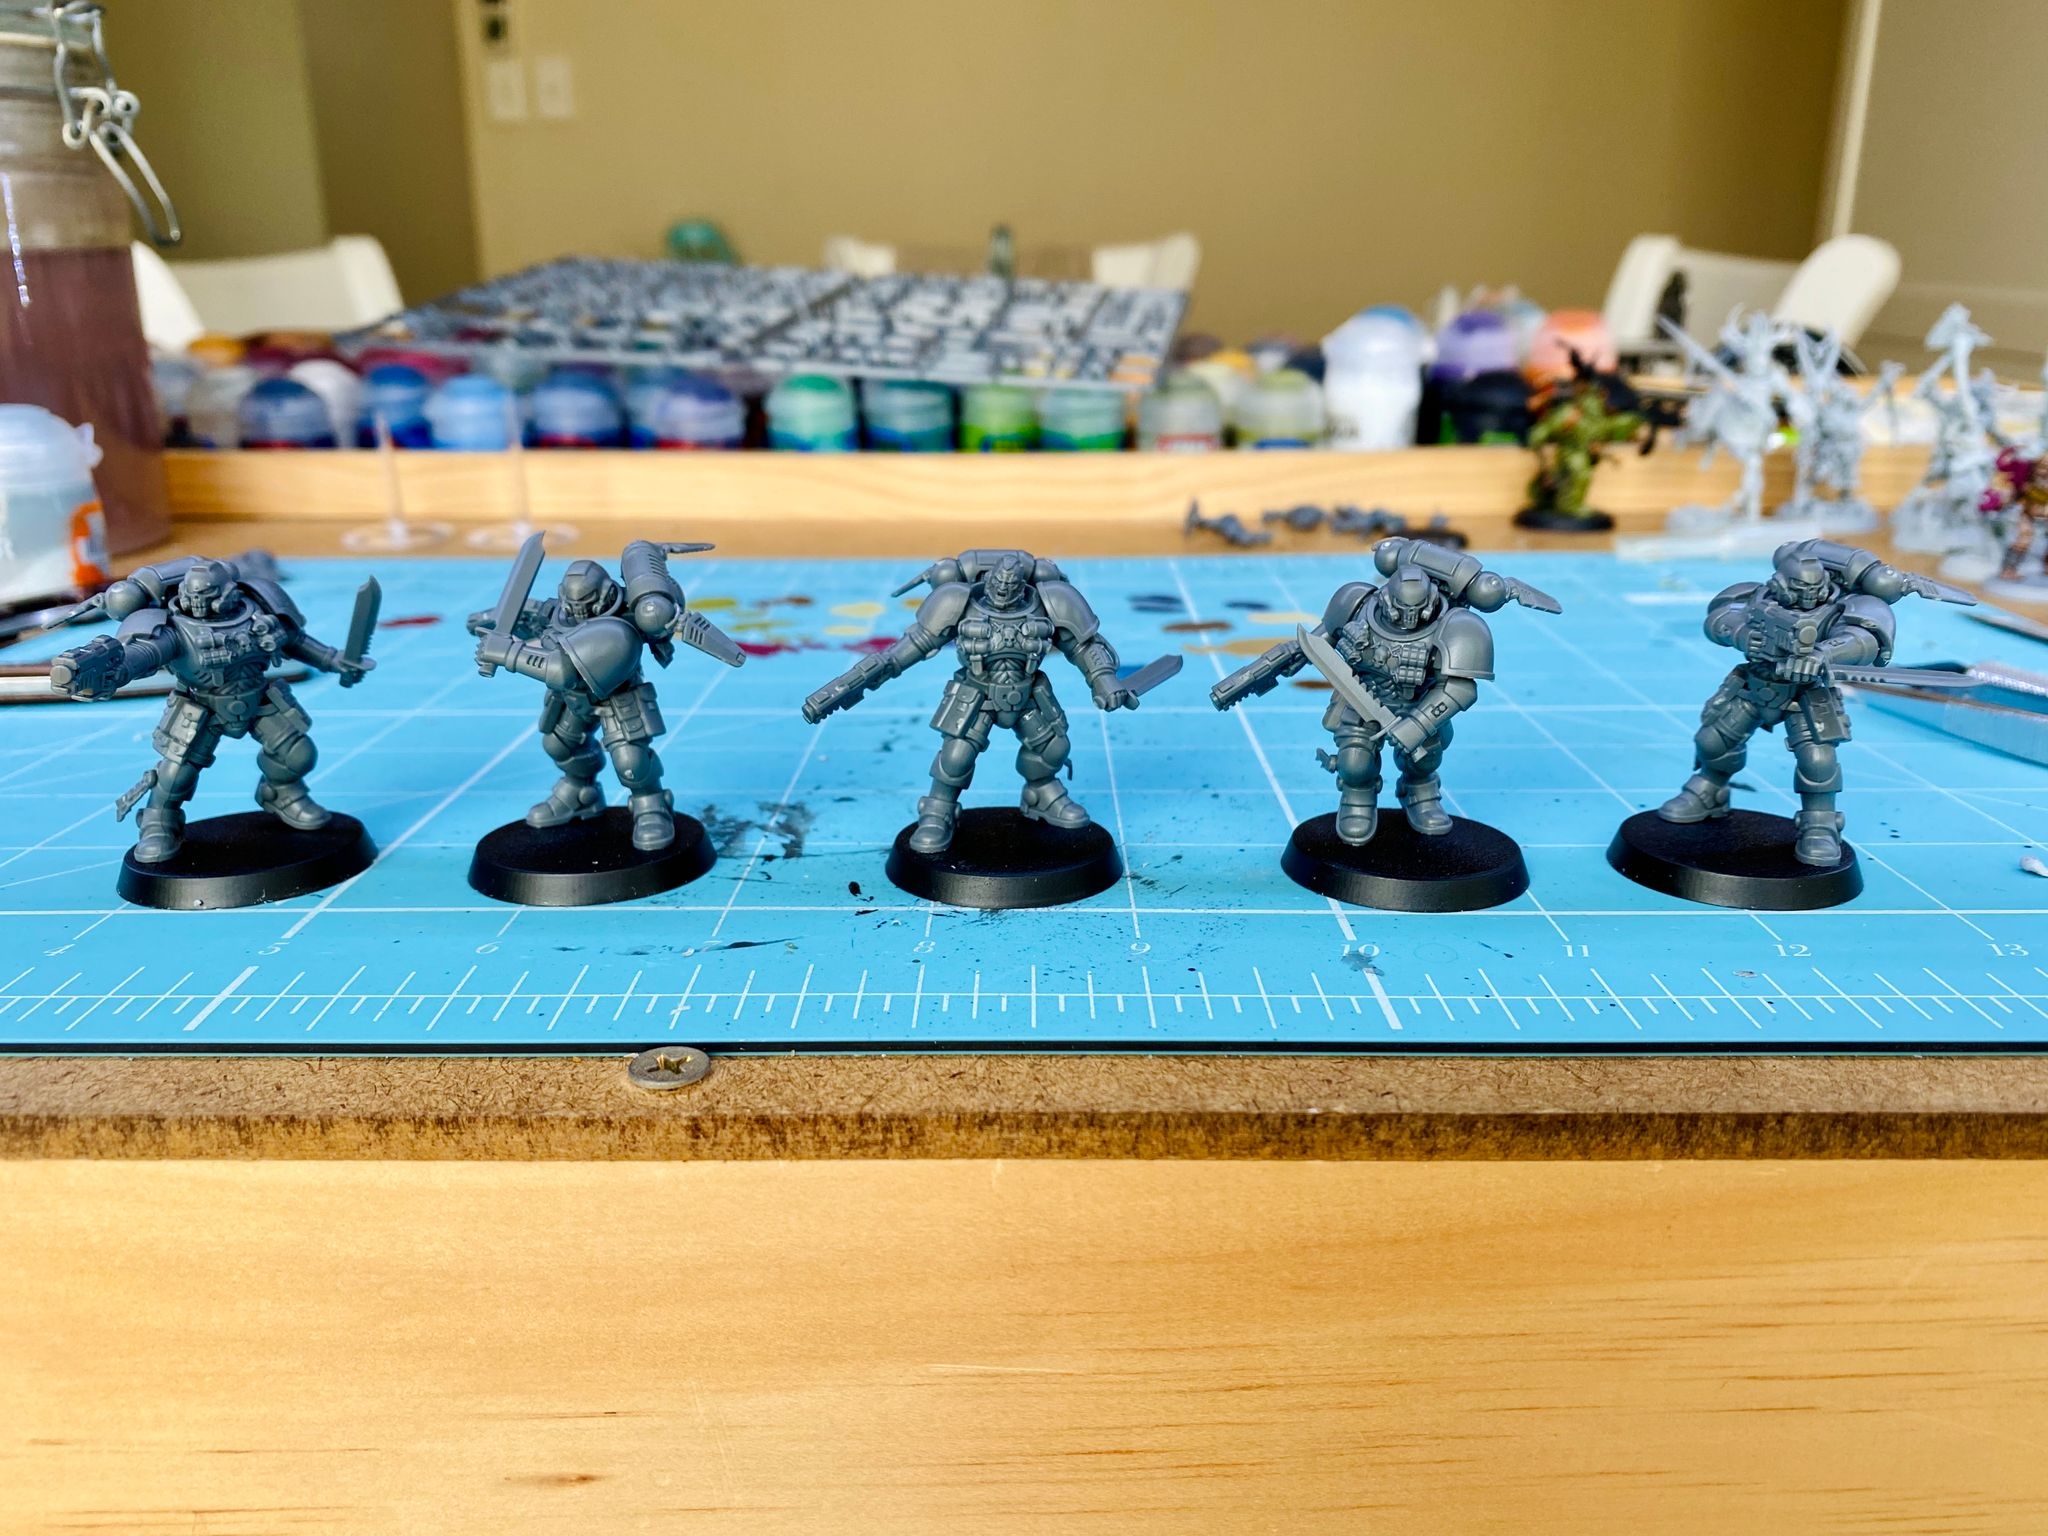 A photo of five assembled but unpainted Space Marine close combat specialists from the Warhammer 40,000 Kill Team box. They're all armed with bolt pistols and combat knives and are in various dynamic poses like they're in the middle of moving or shooting during a battle.